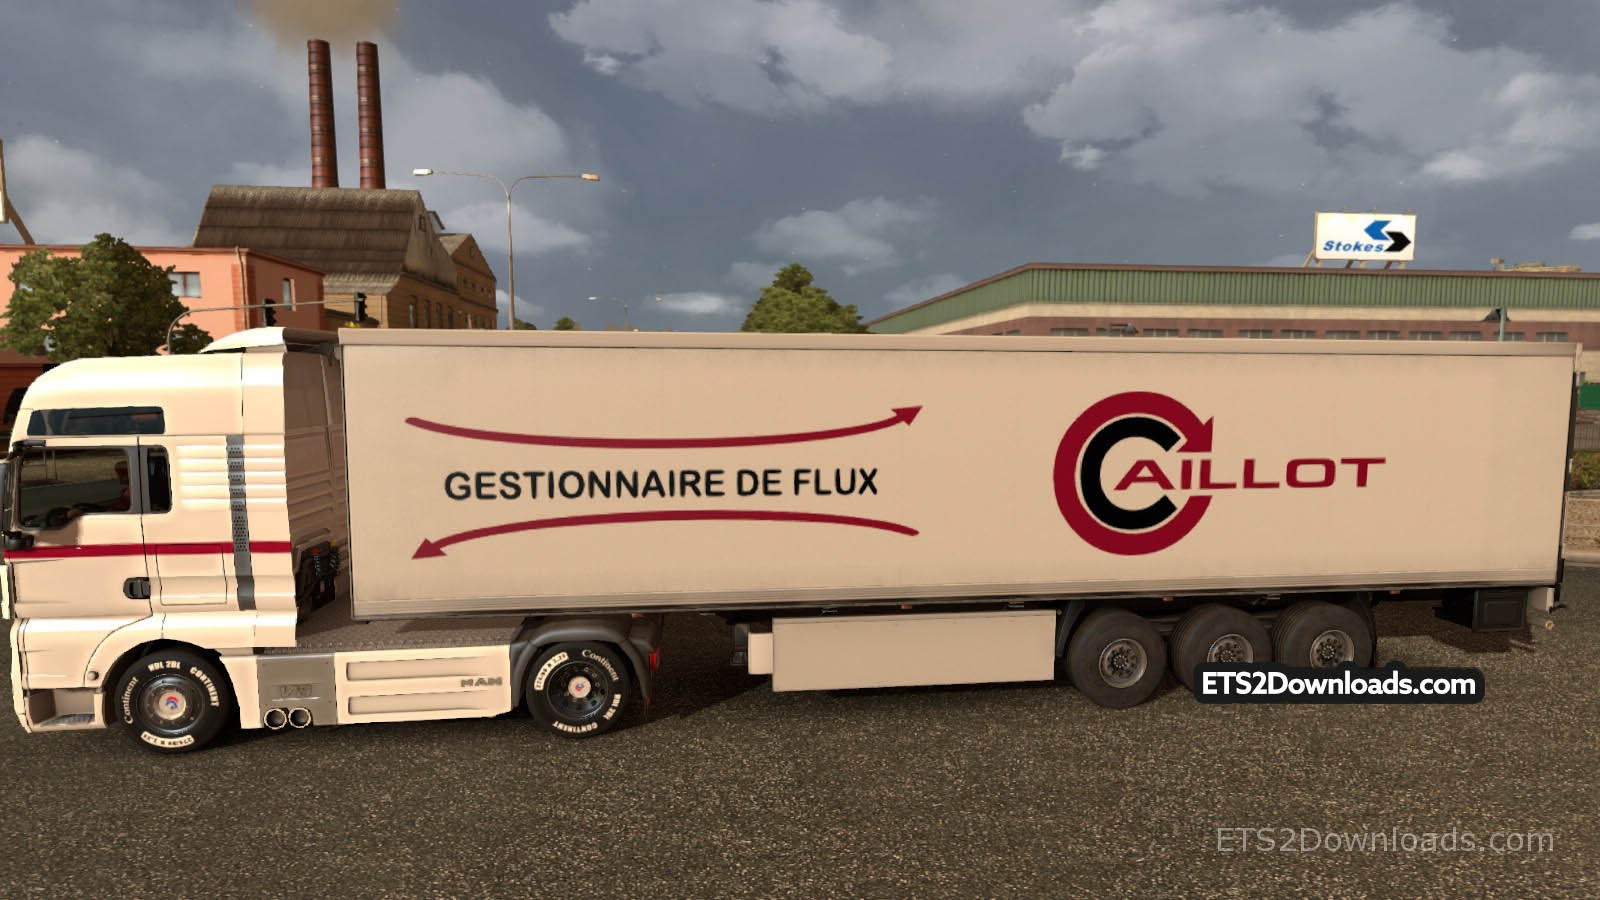 calliot-transport-skin-and-trailer-for-man-1